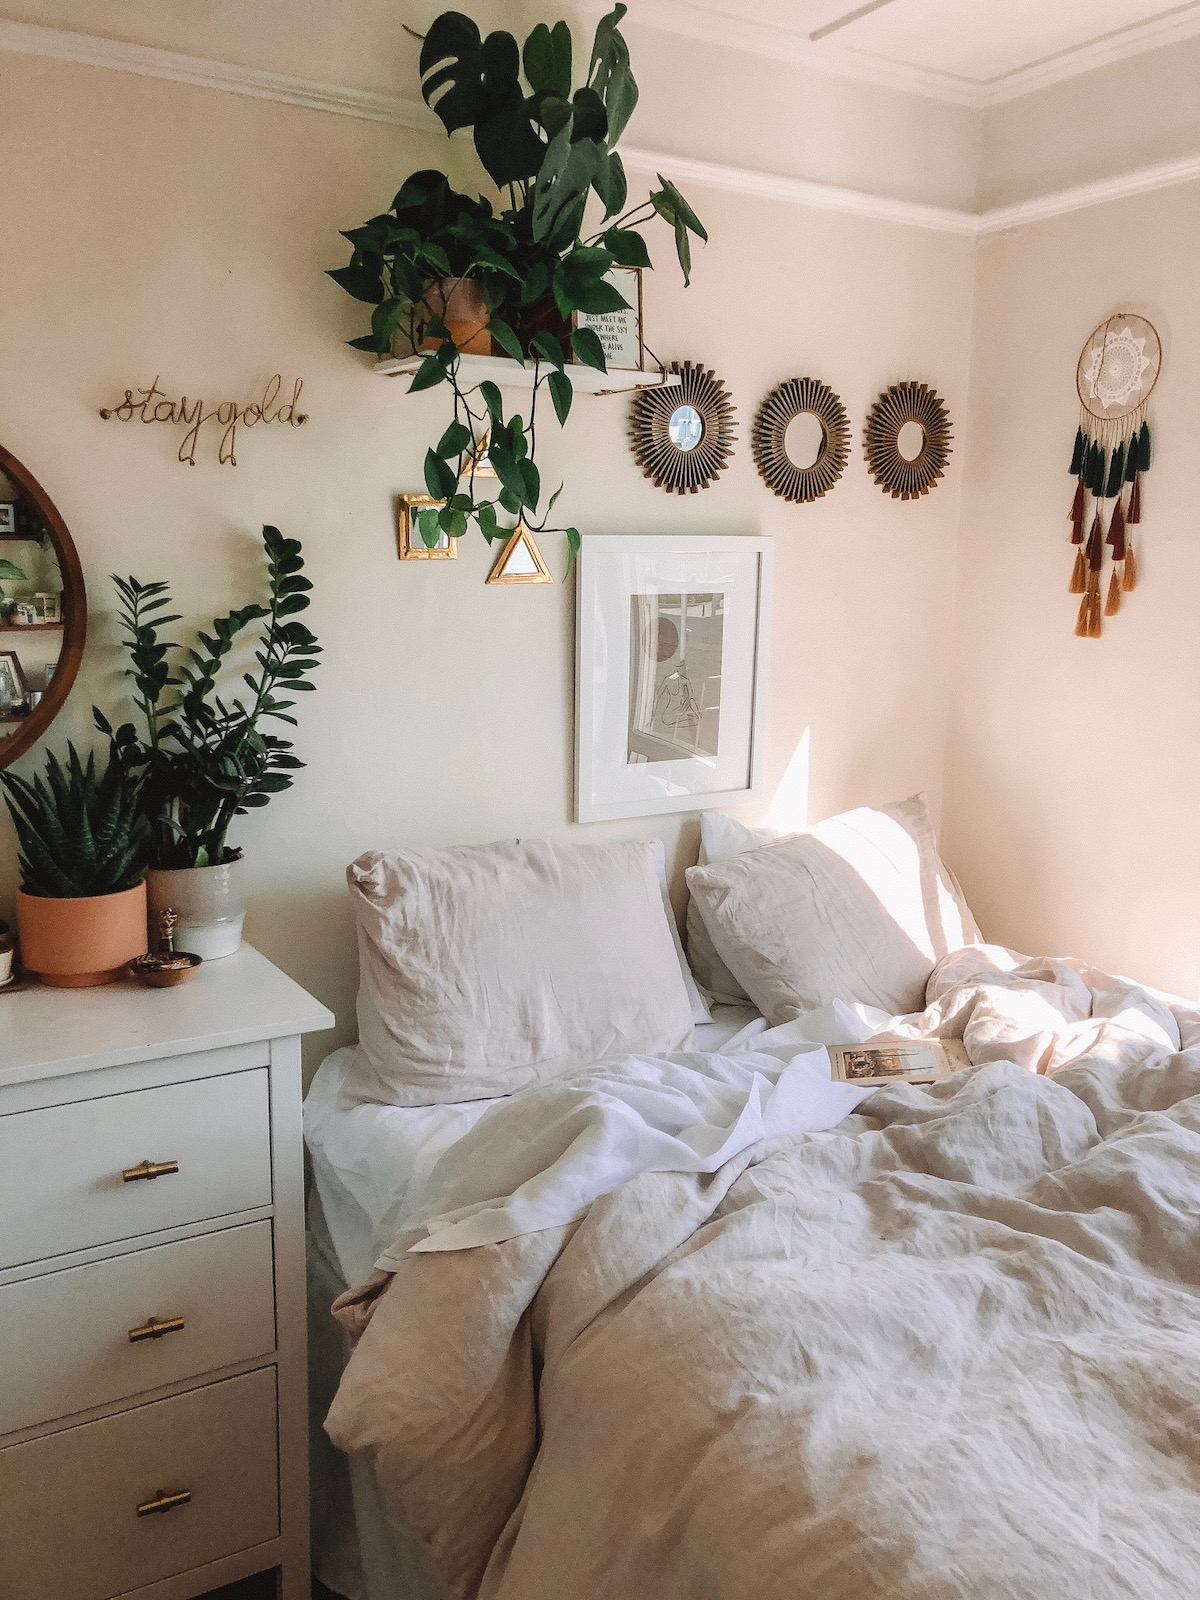 Bedroom design using multiple tones in a color family